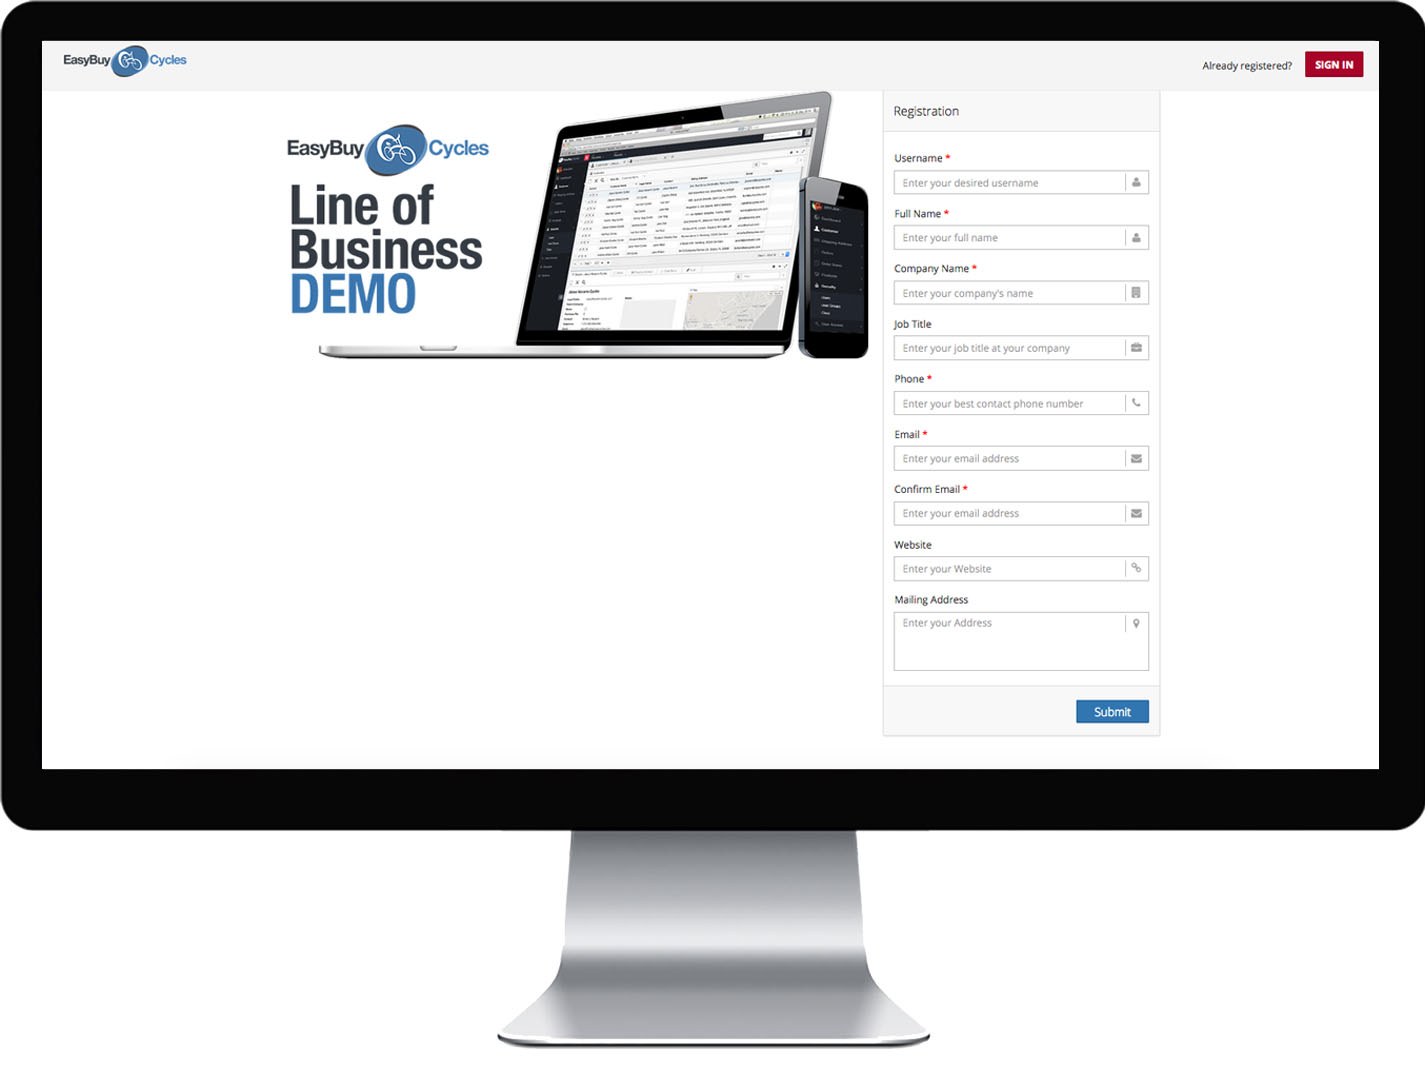 Screenshot of default out-of-the-box website portal registration.